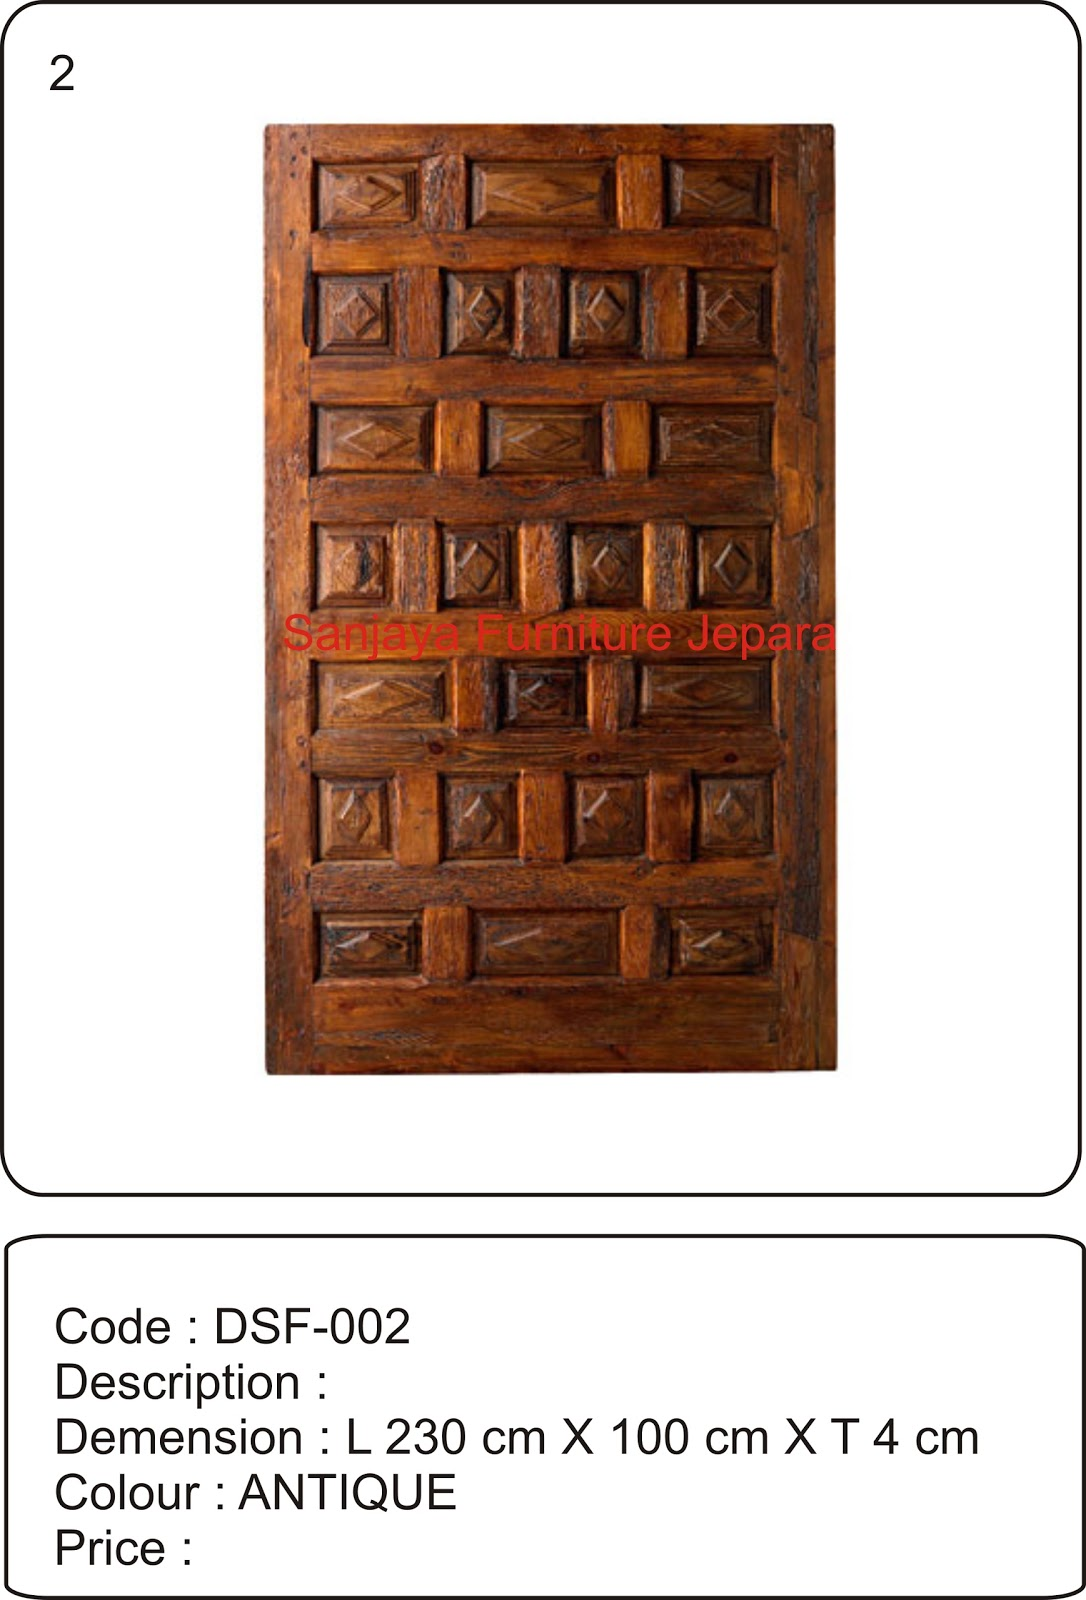 Block teak doors sanjaya furniture jepara for Furniture jepara